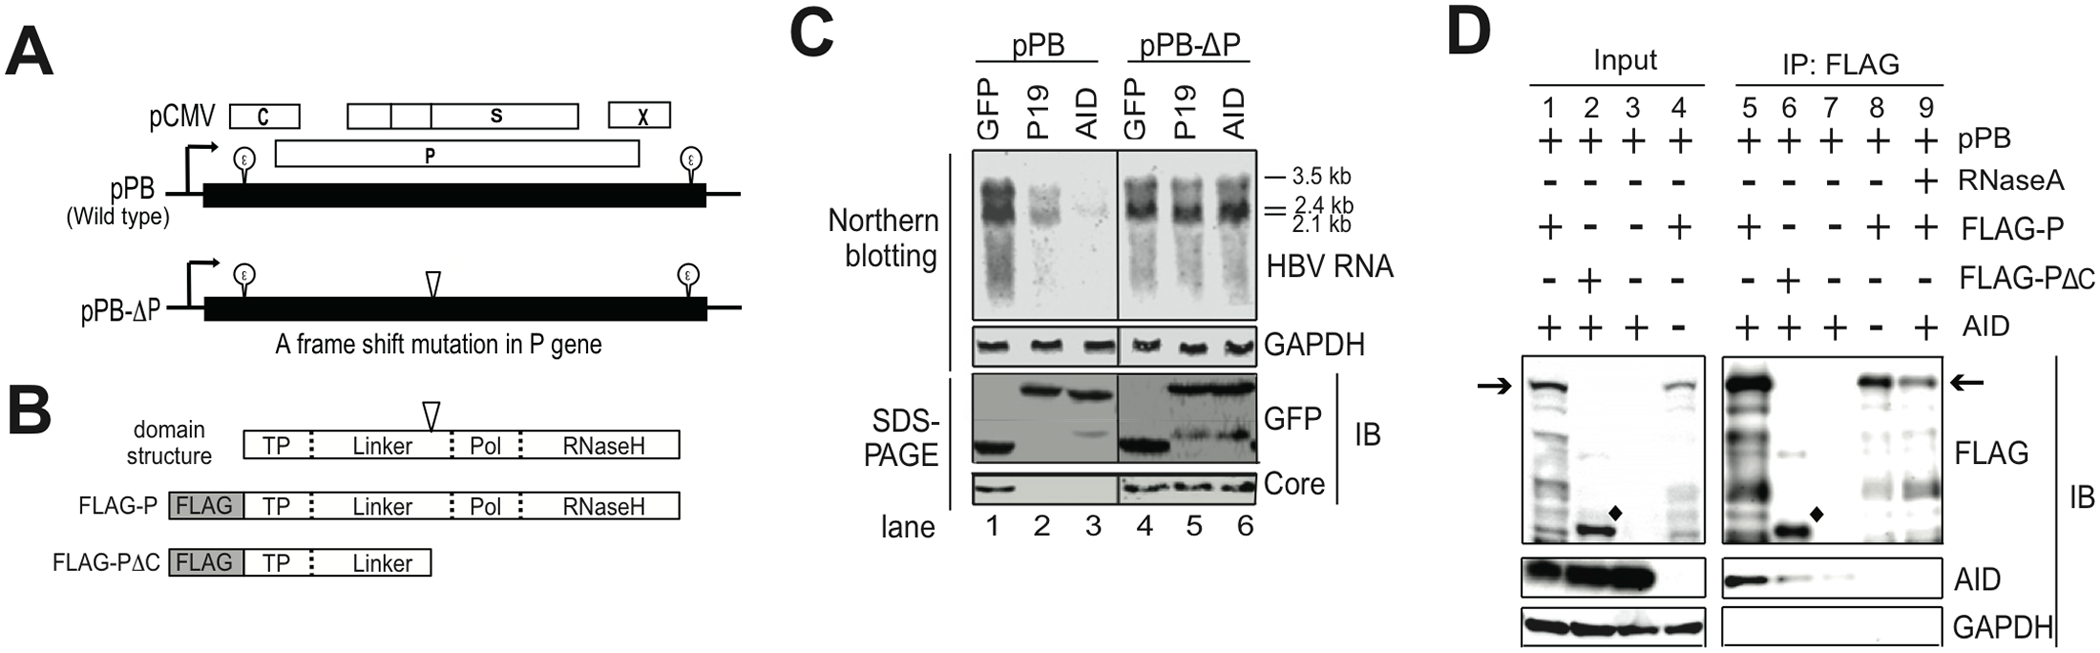 Intact P protein is required for AID-mediated downregulation of HBV transcripts and AID associates with HBV P protein.